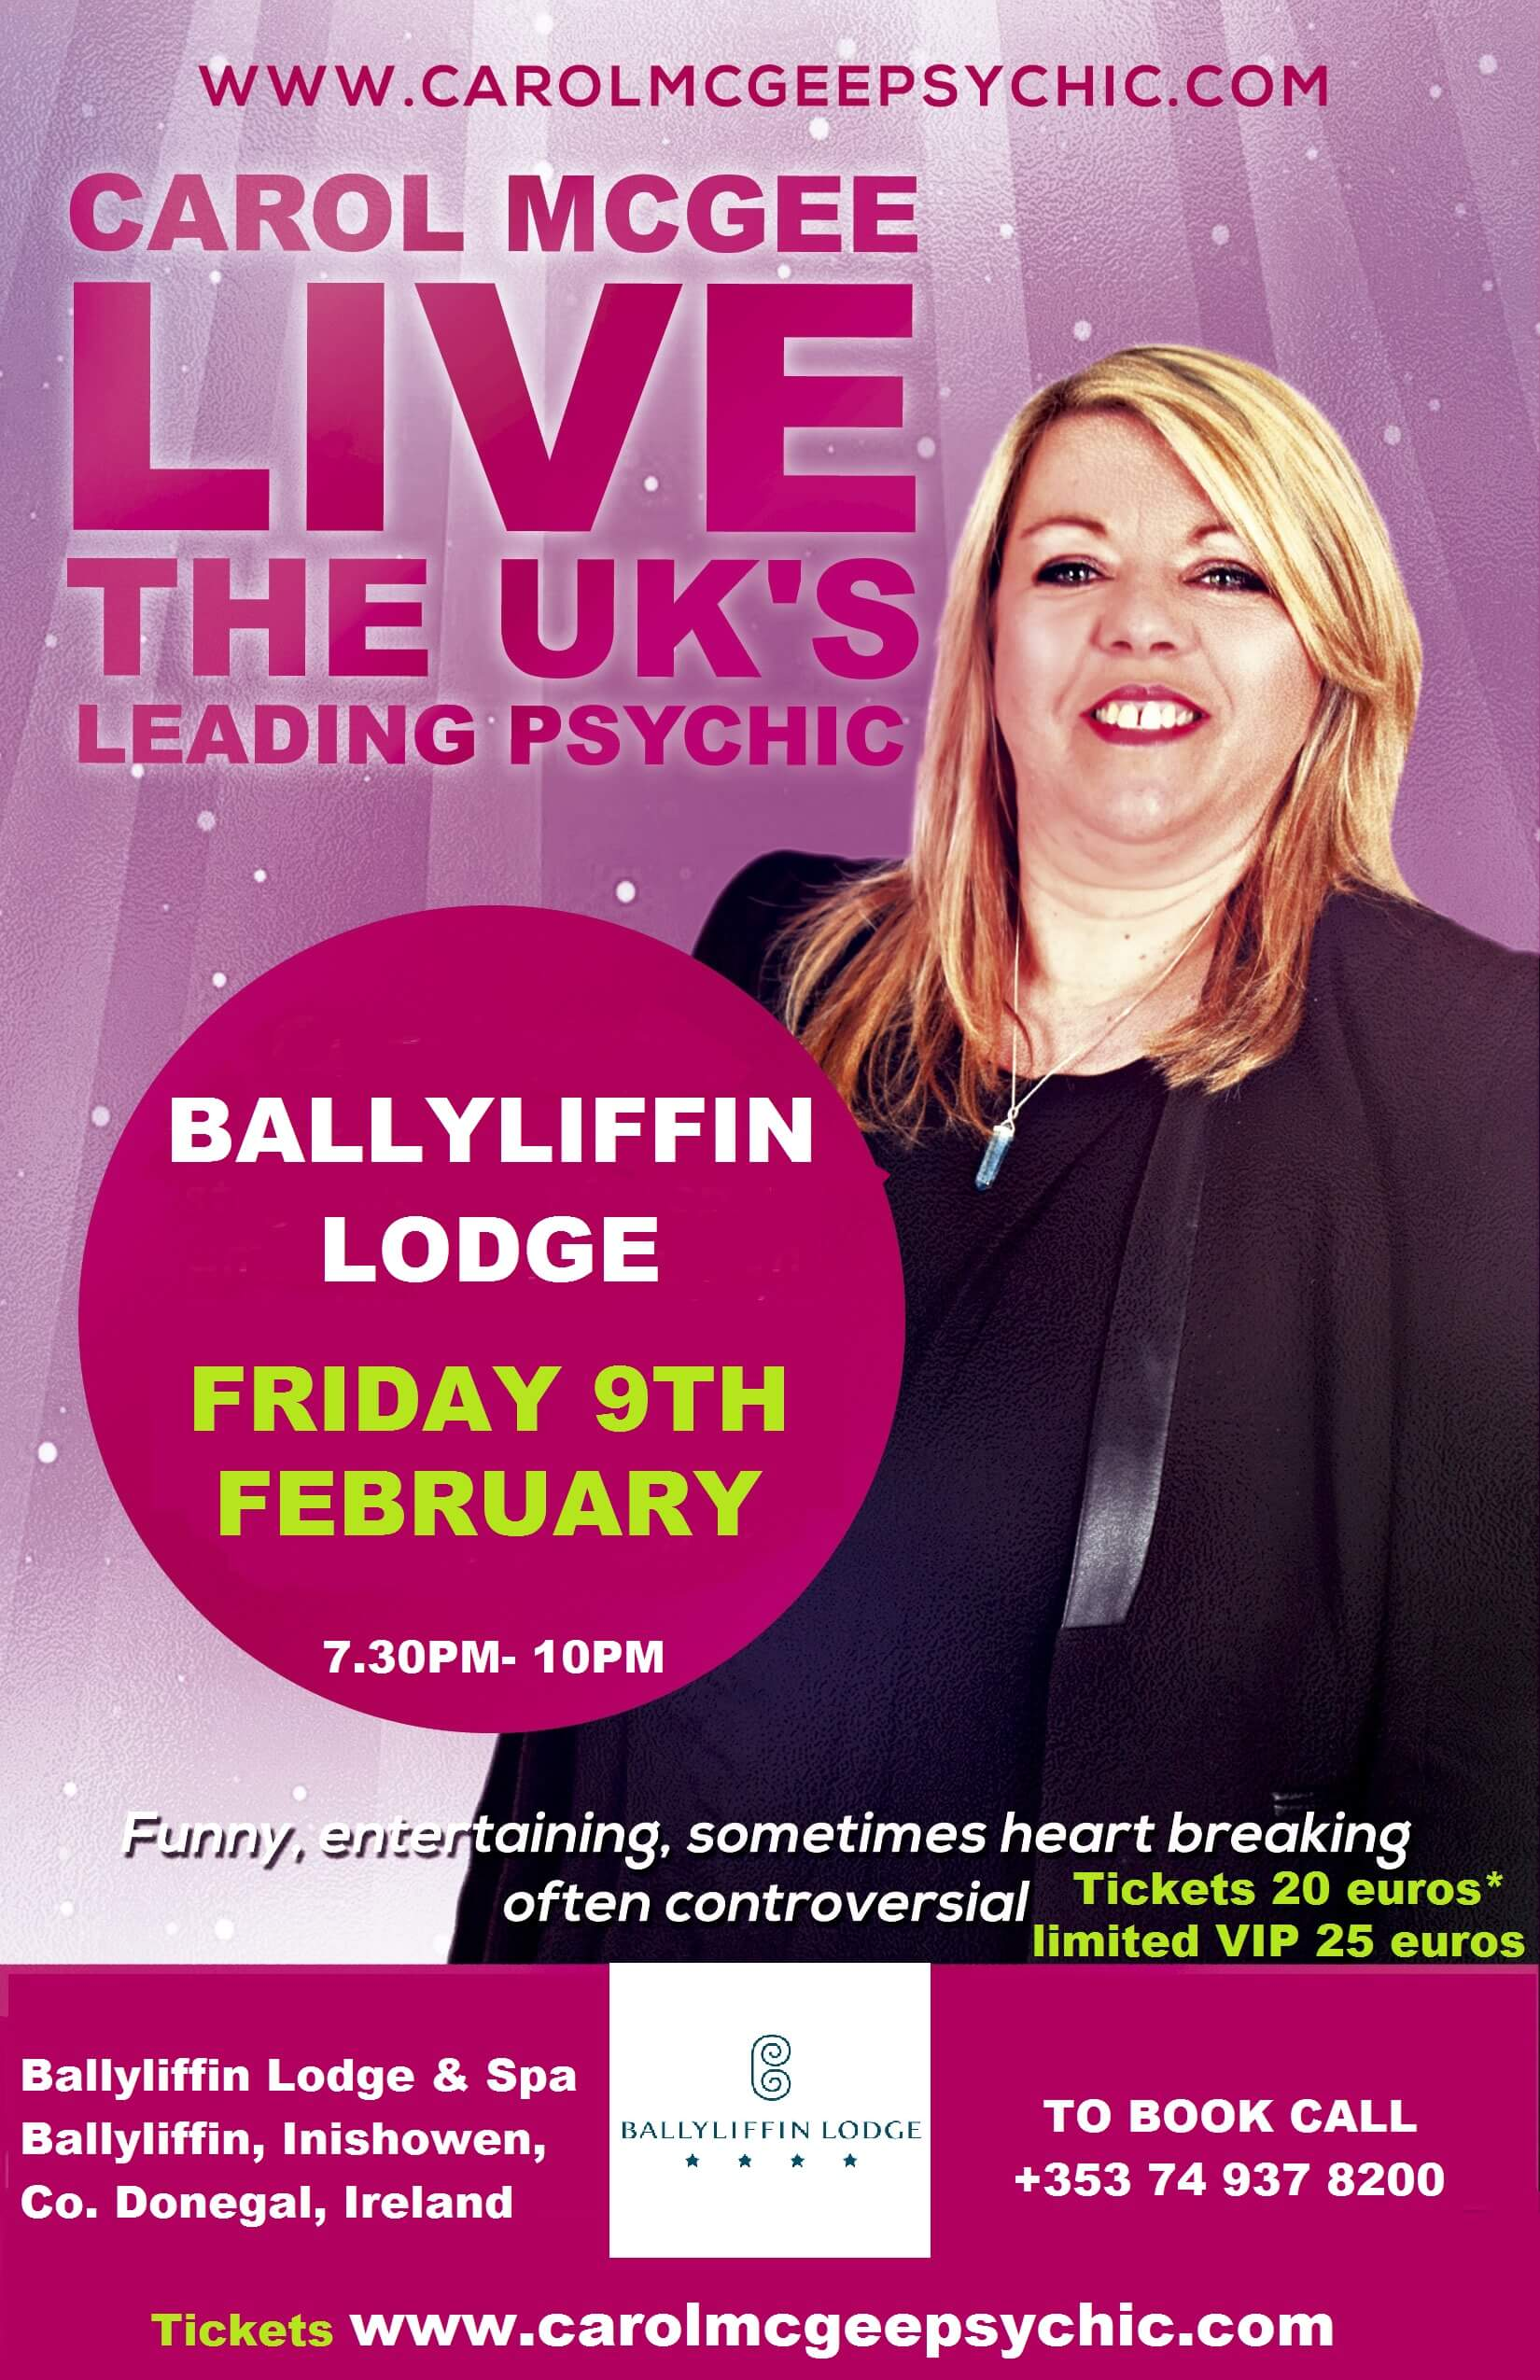 Psychic Night at Ballyliffin Lodge & Spa 9th February 2018